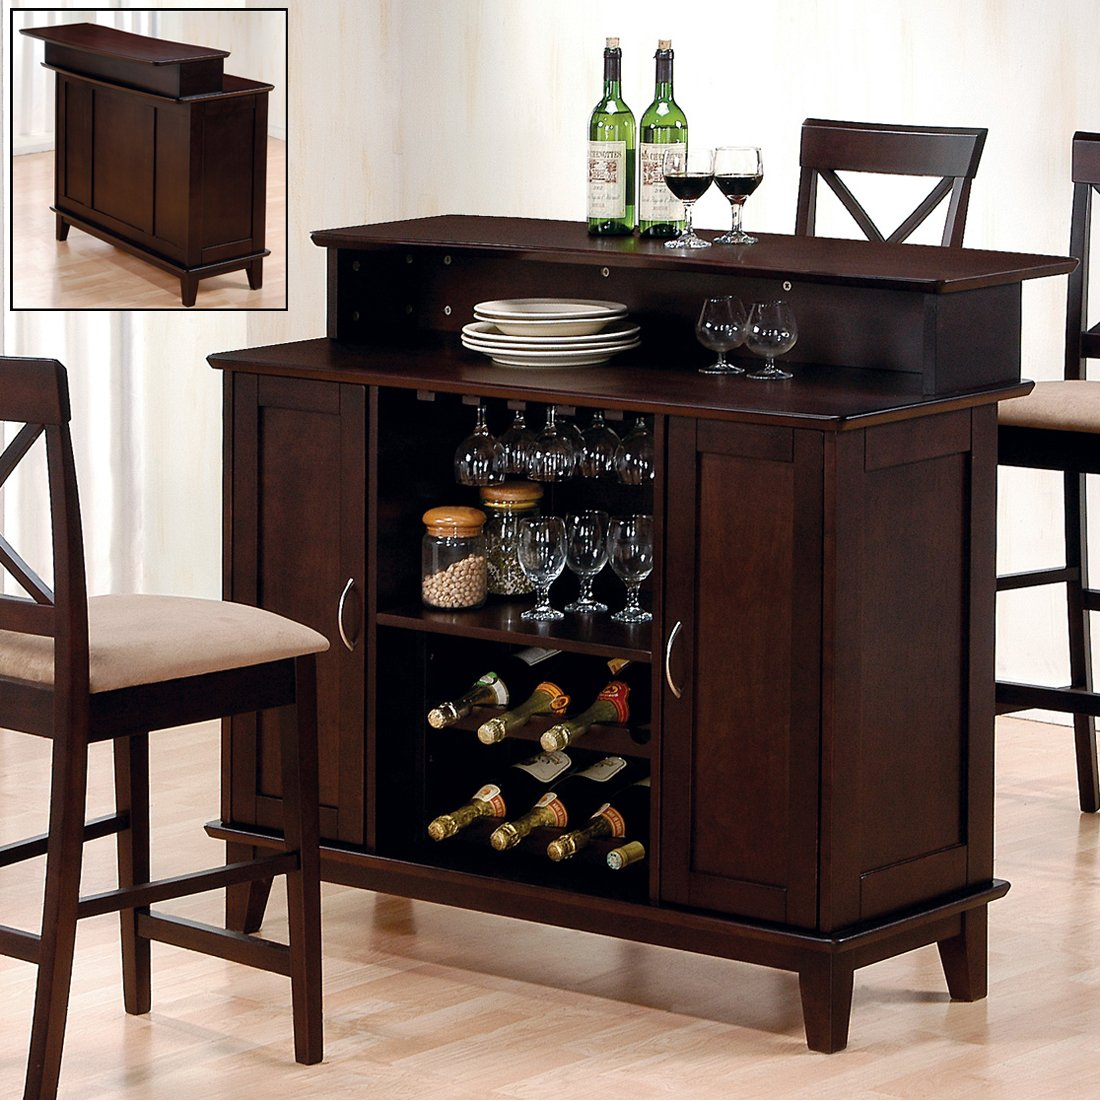 Small bar furniture for apartment best decor things for Small bar furniture for apartment